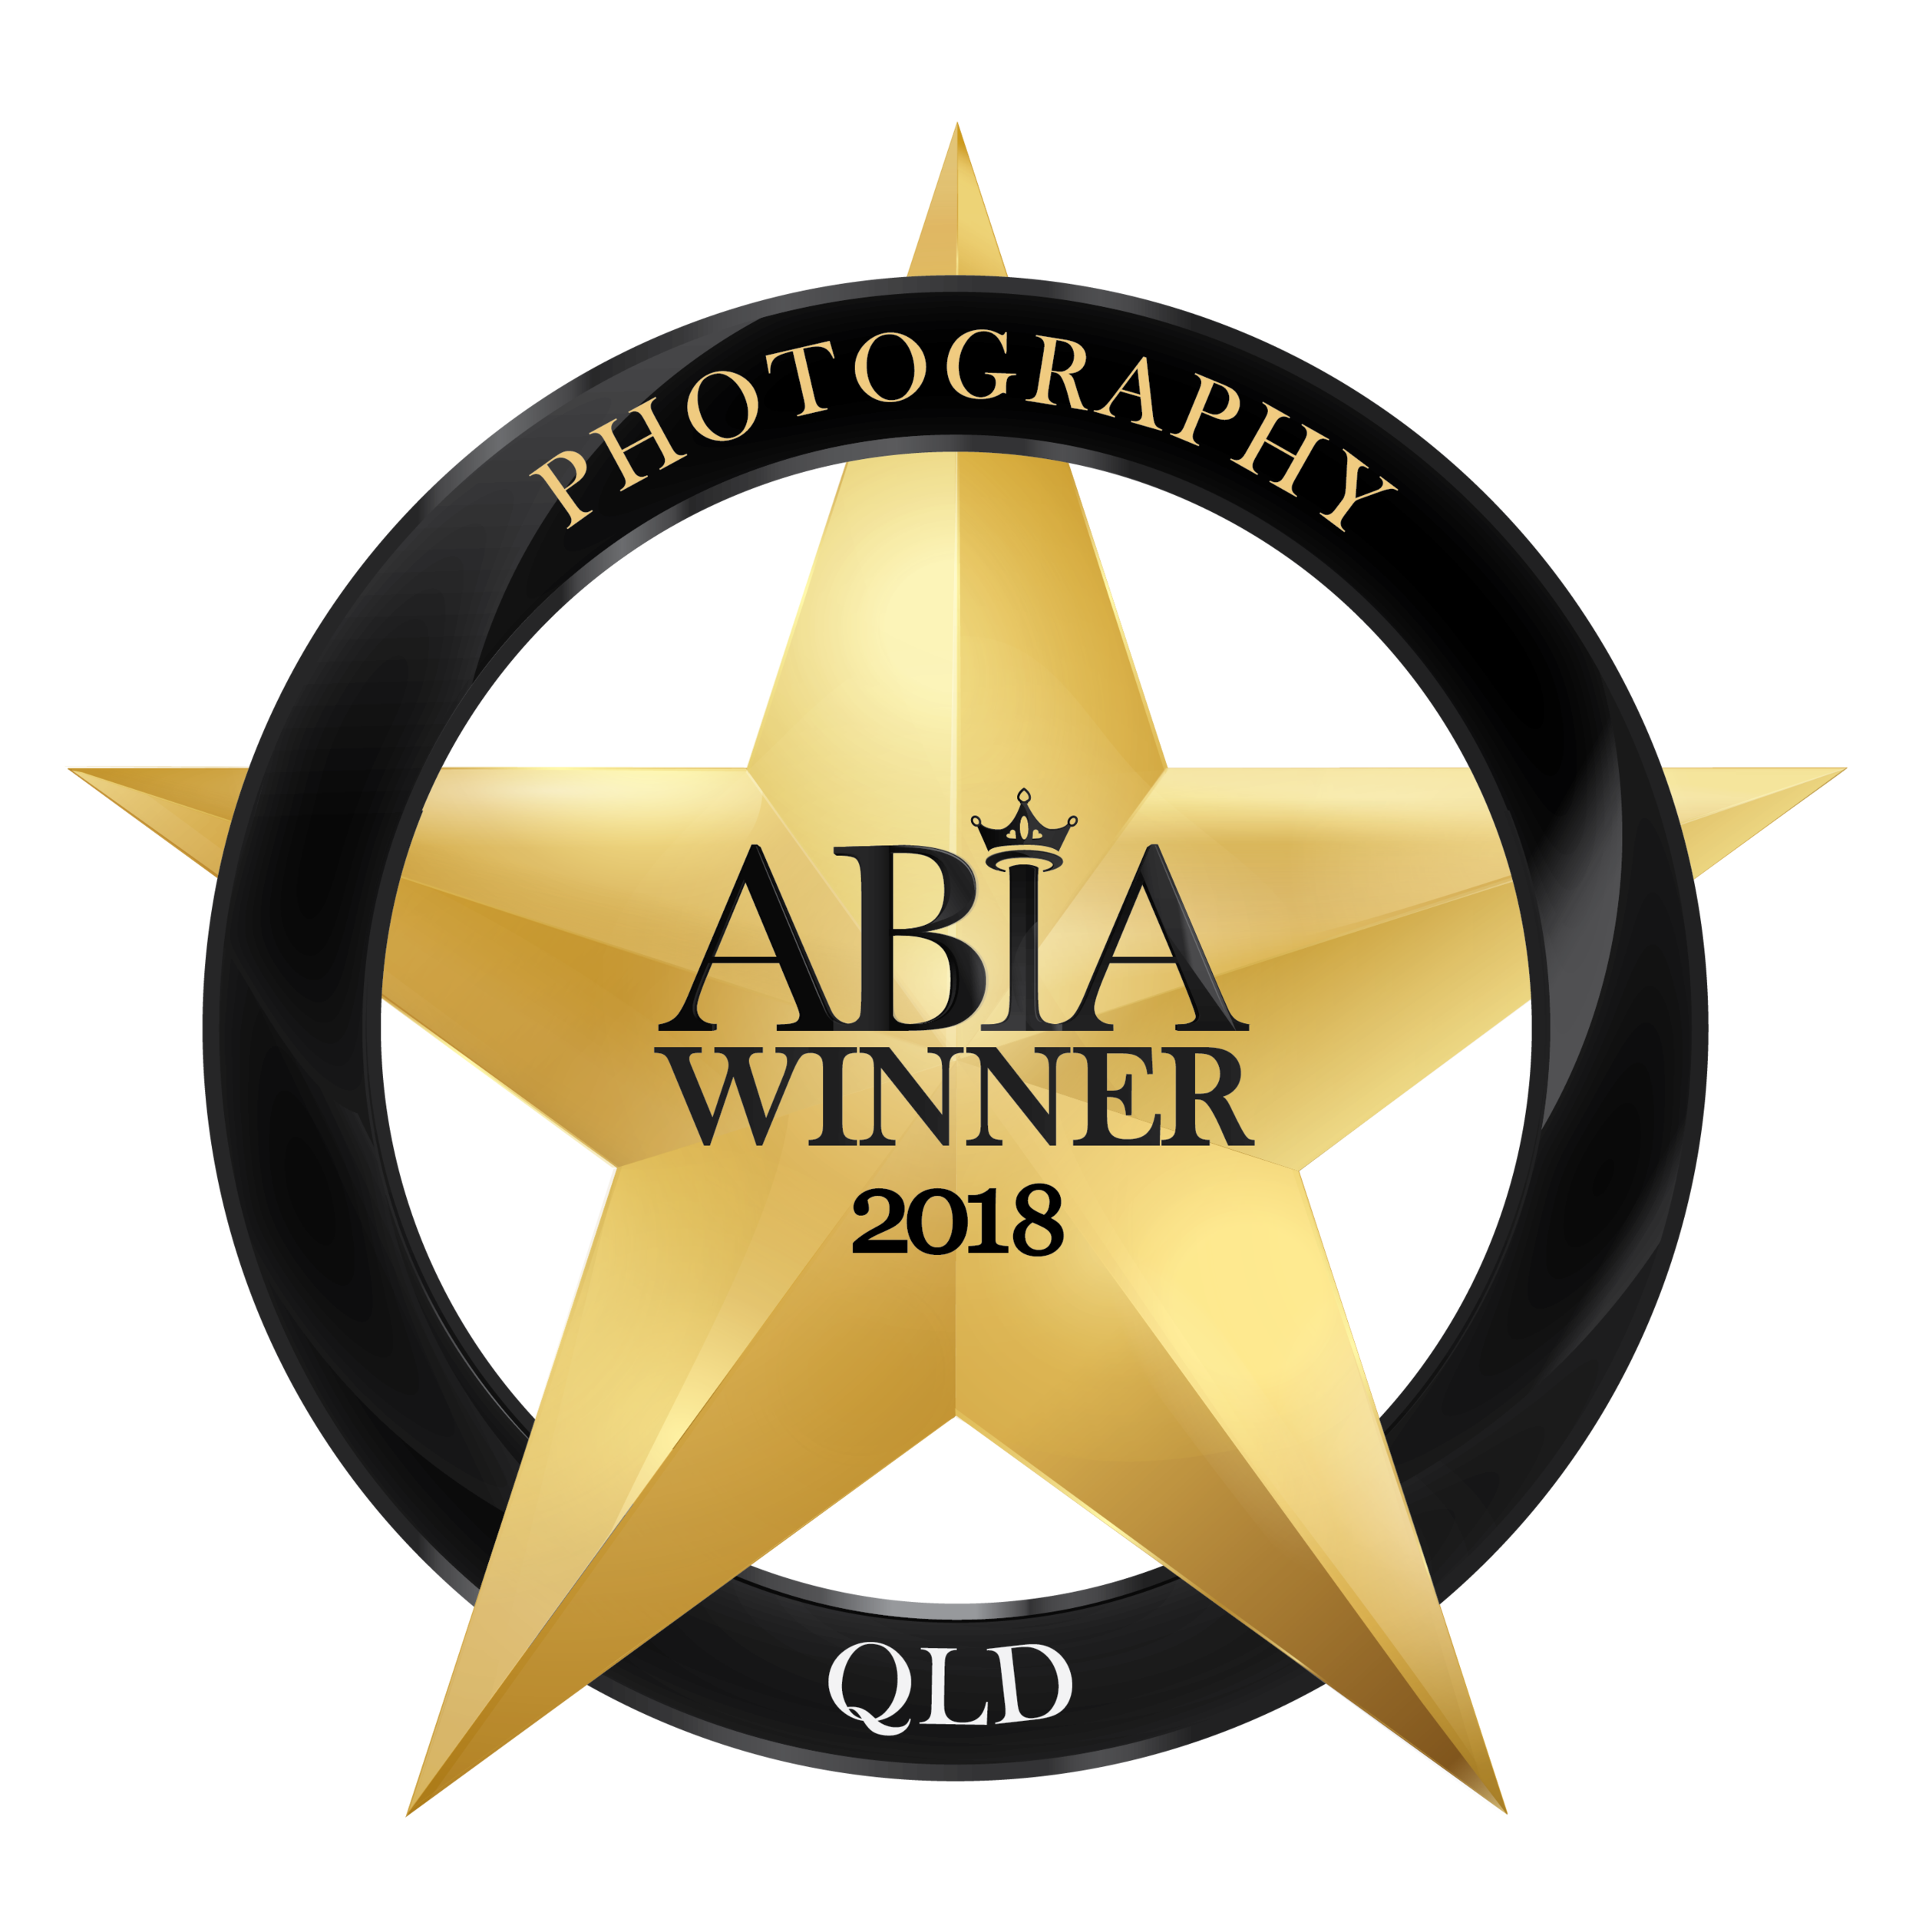 ABIA Wedding photographer of the year Queensland